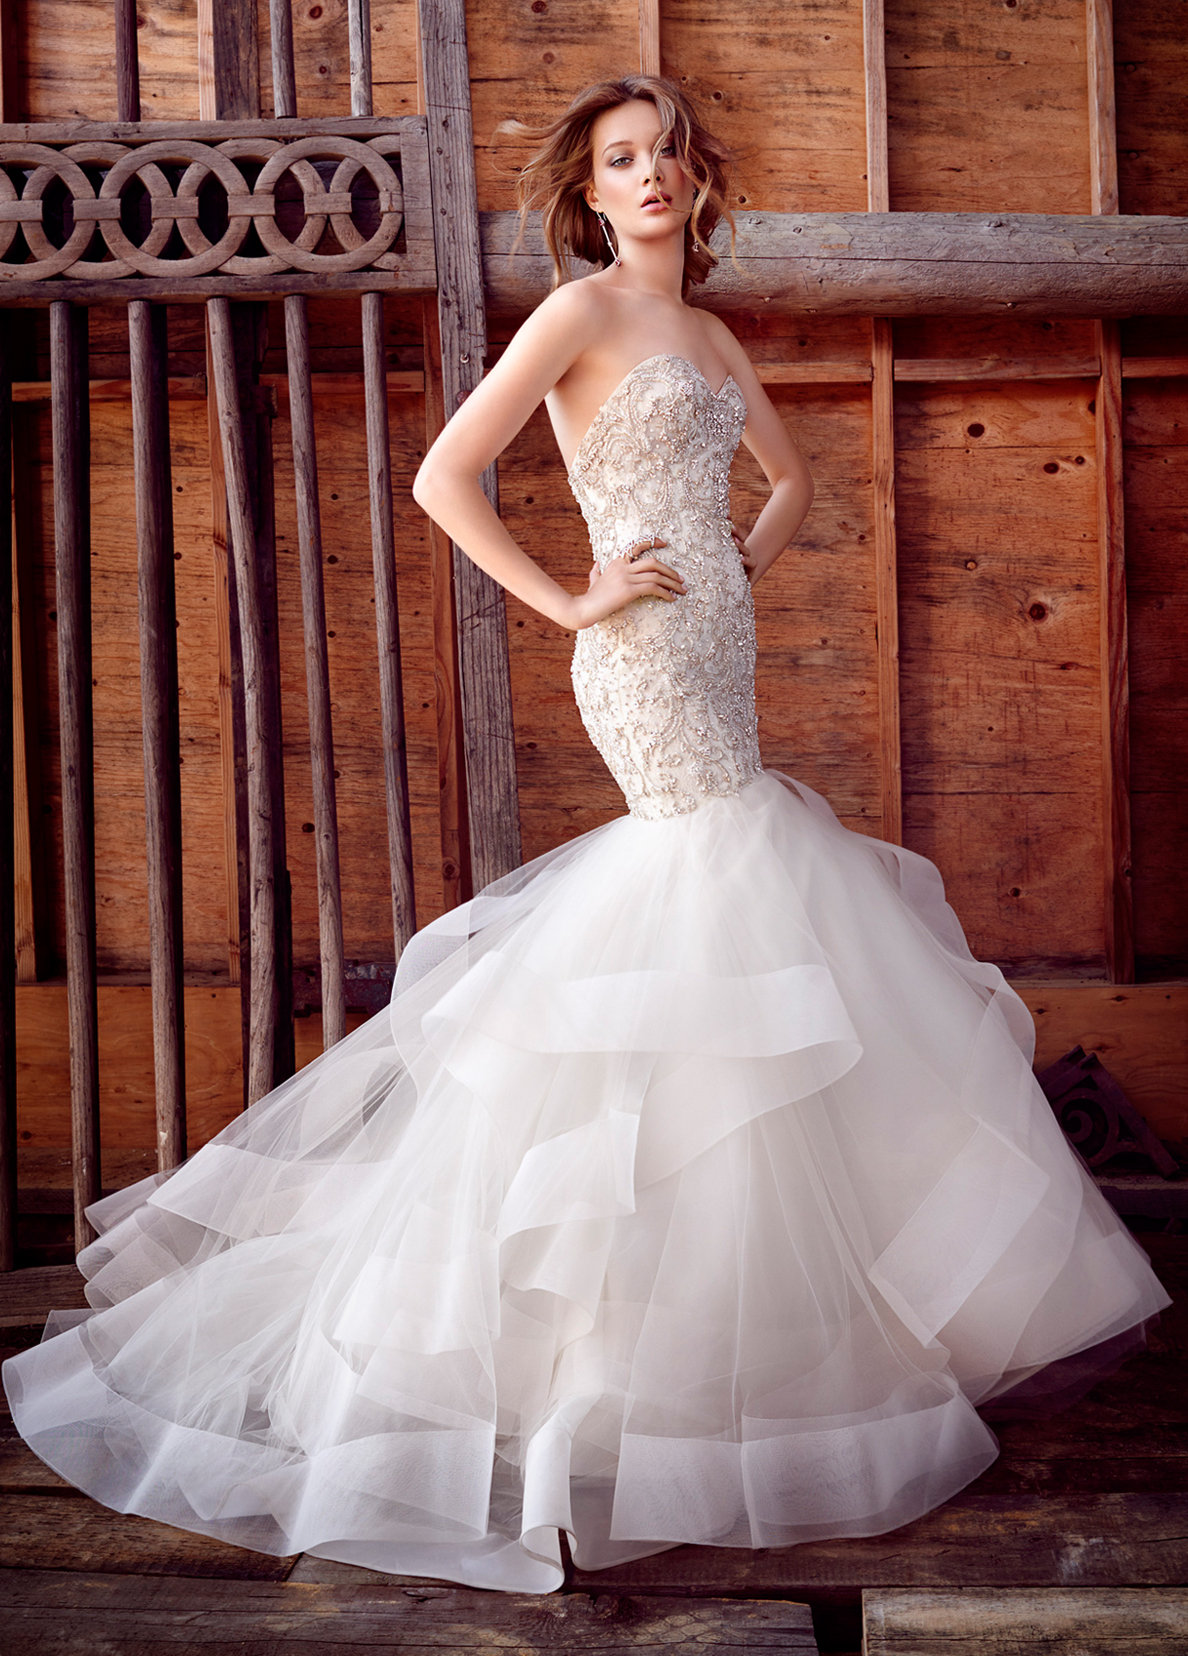 Bridal gowns and wedding dresses by jlm couture style 3553 for In style wedding dresses